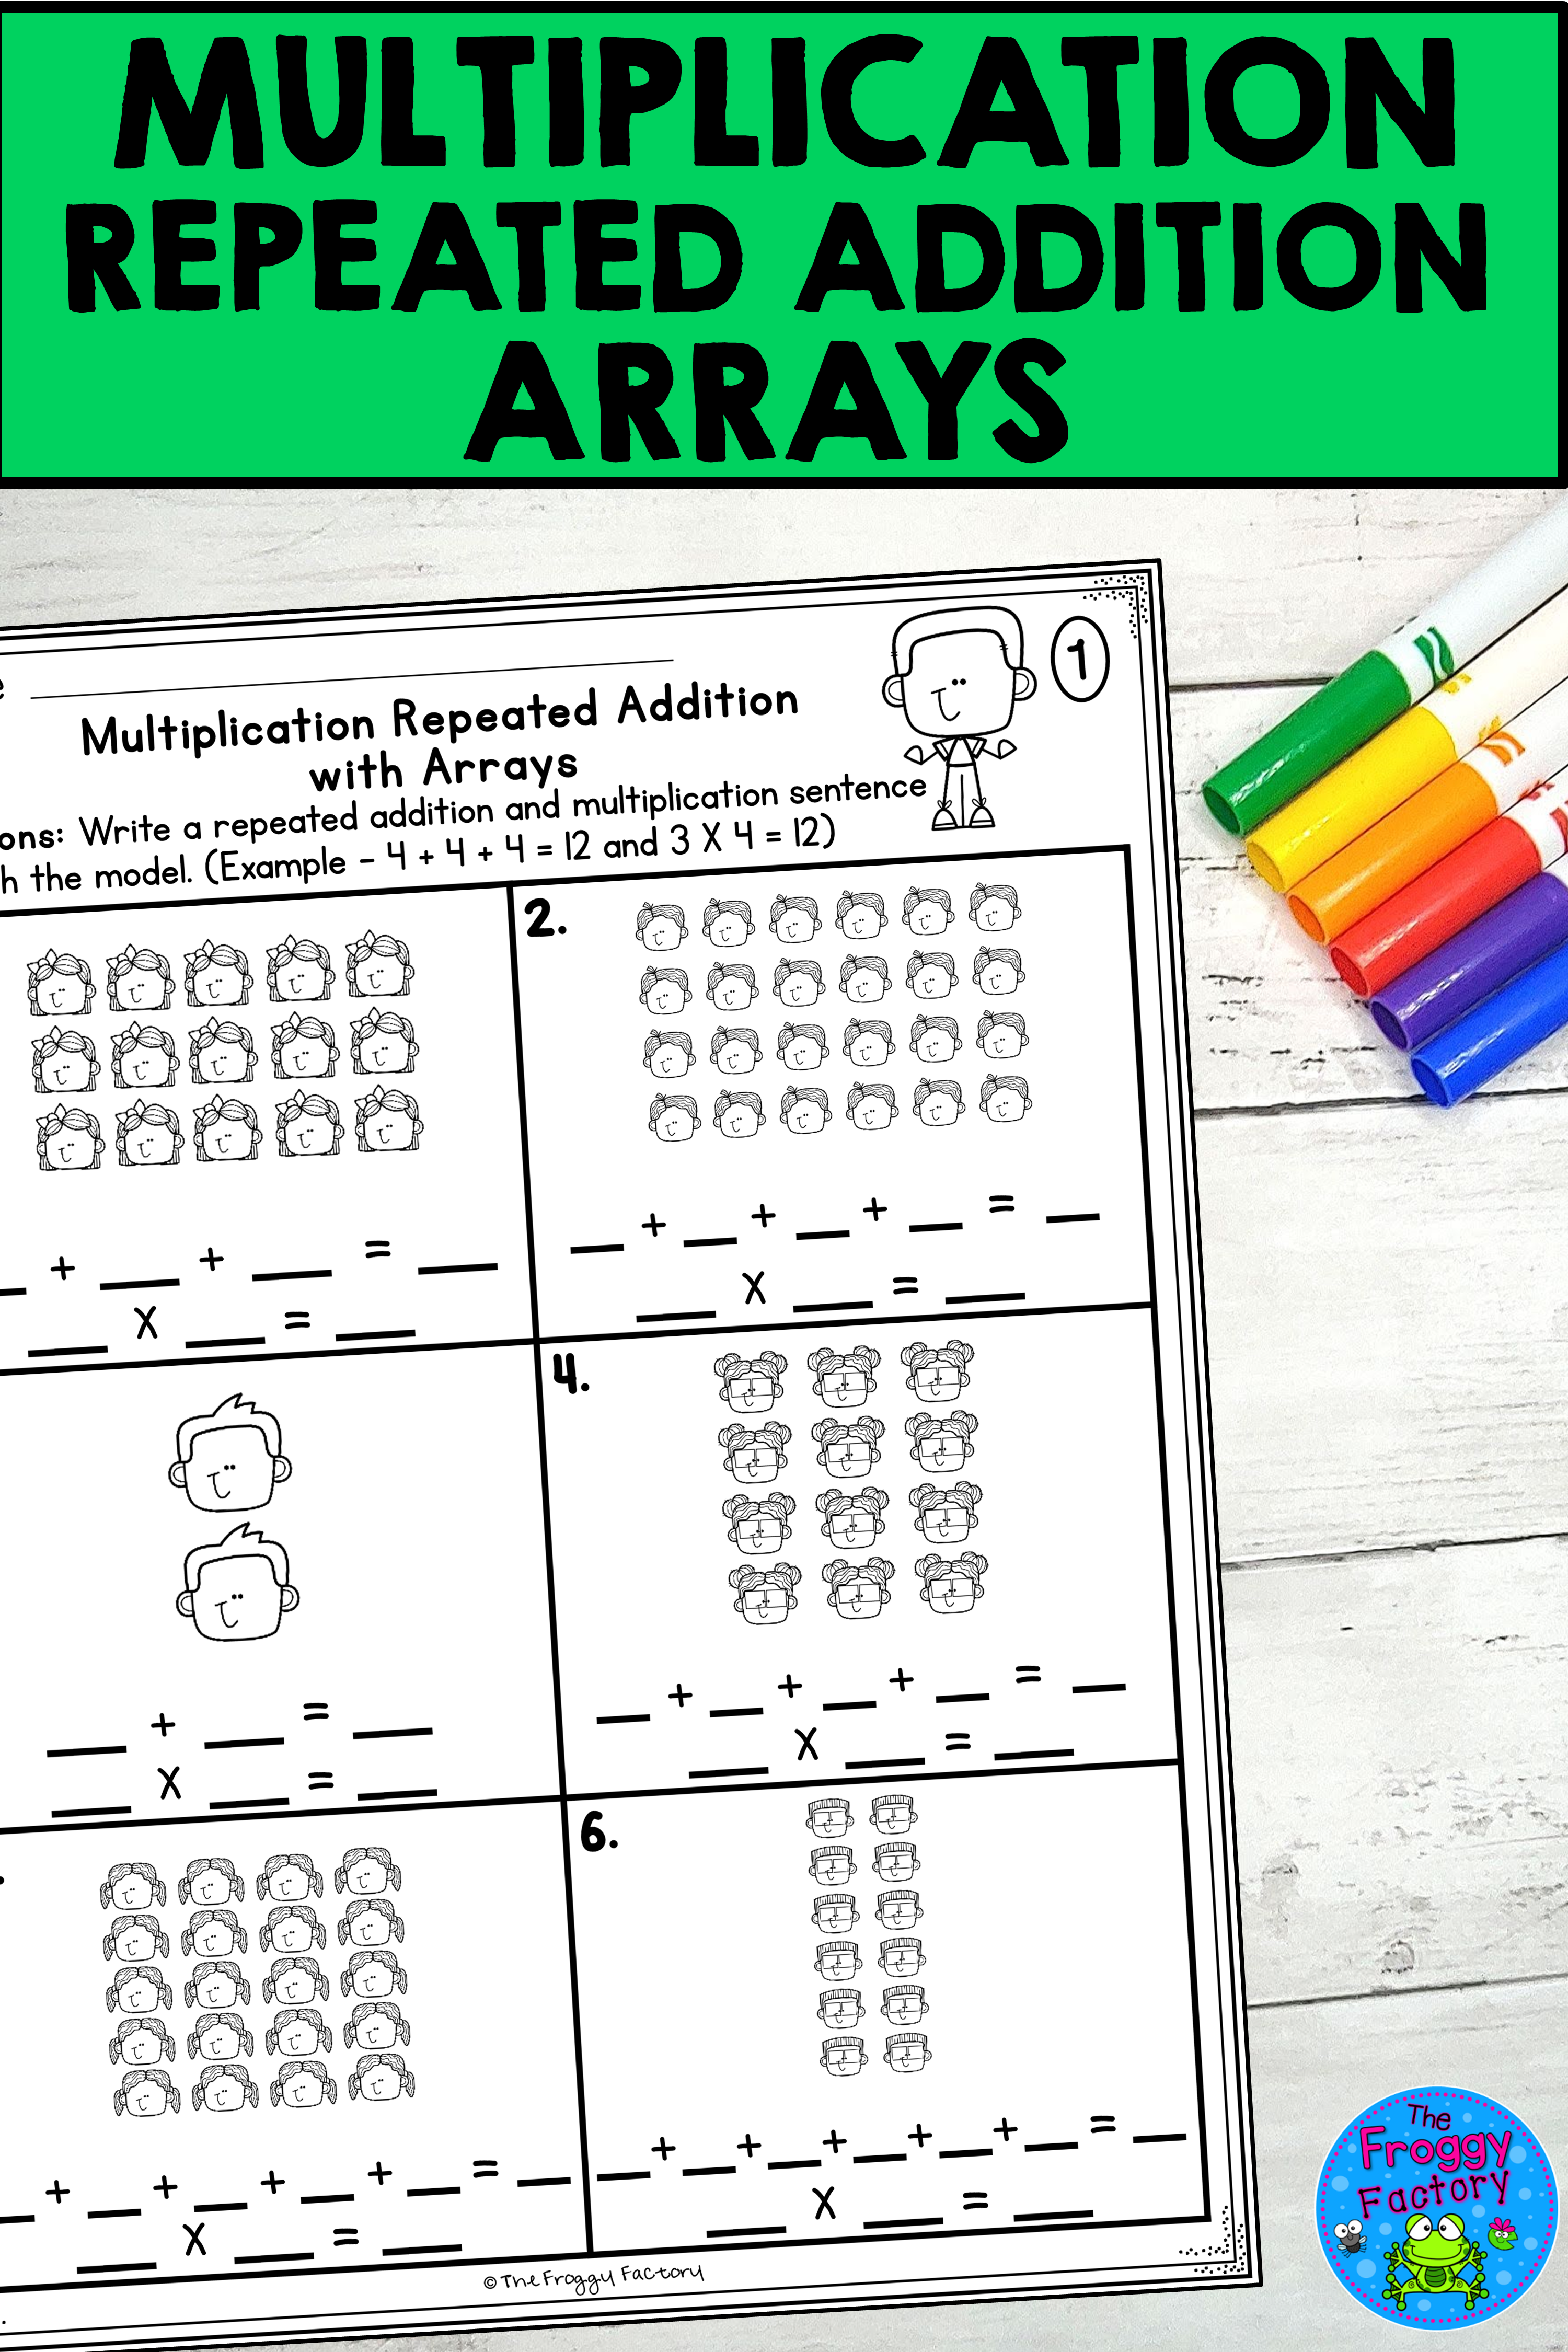 Multiplication Repeated Addition Arrays Worksheets